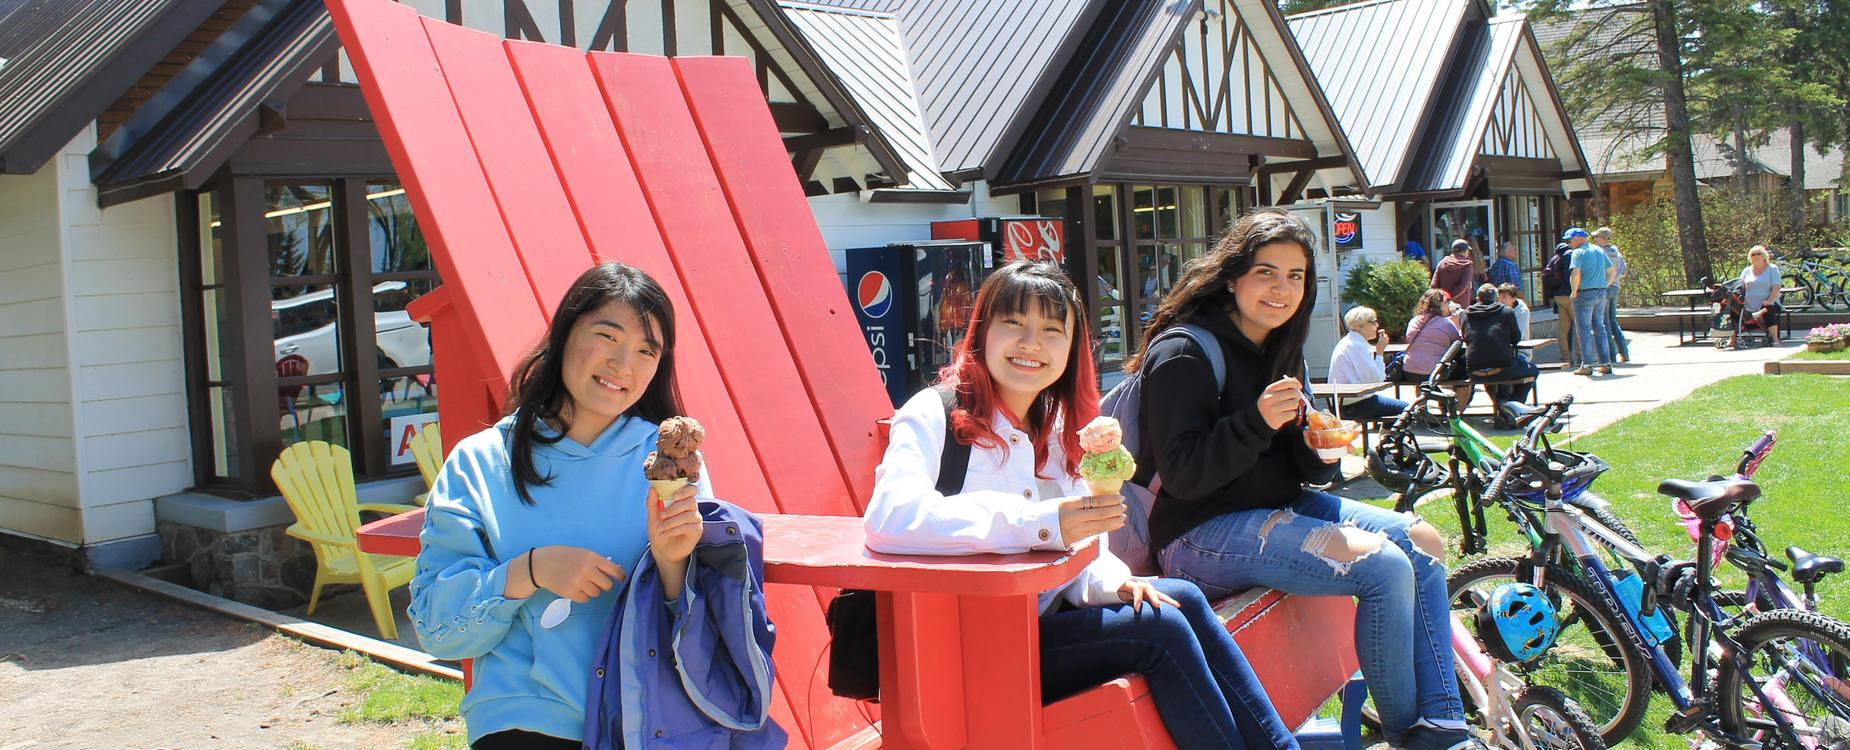 girls sitting on a large red bench